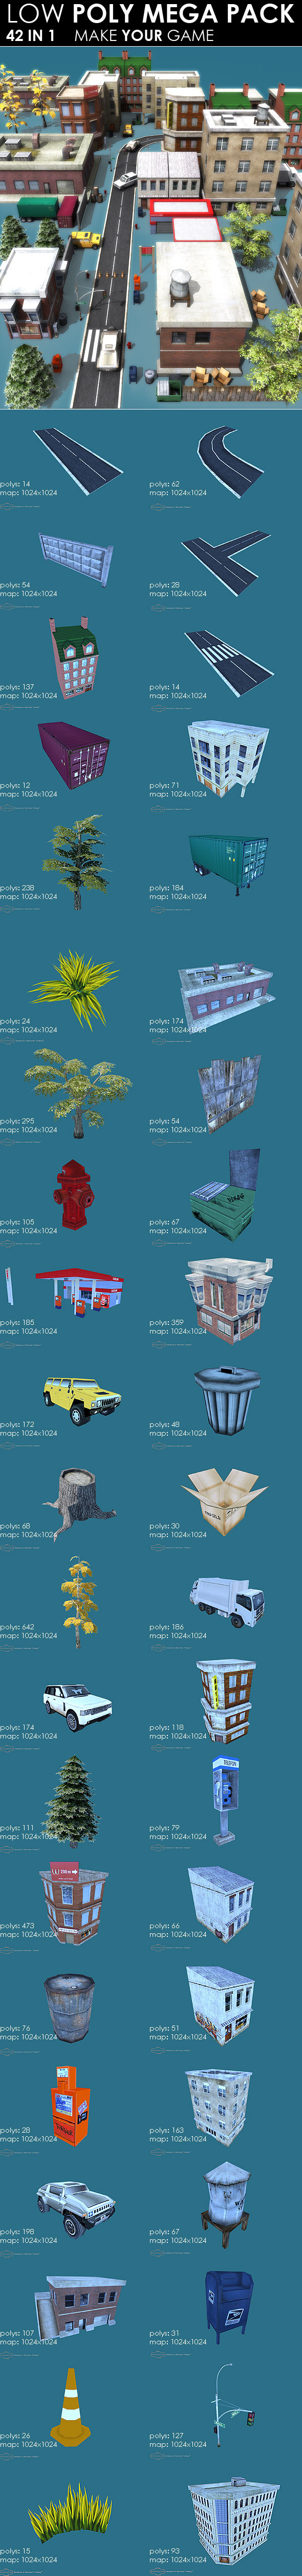 Low poly City Megapack 42 models